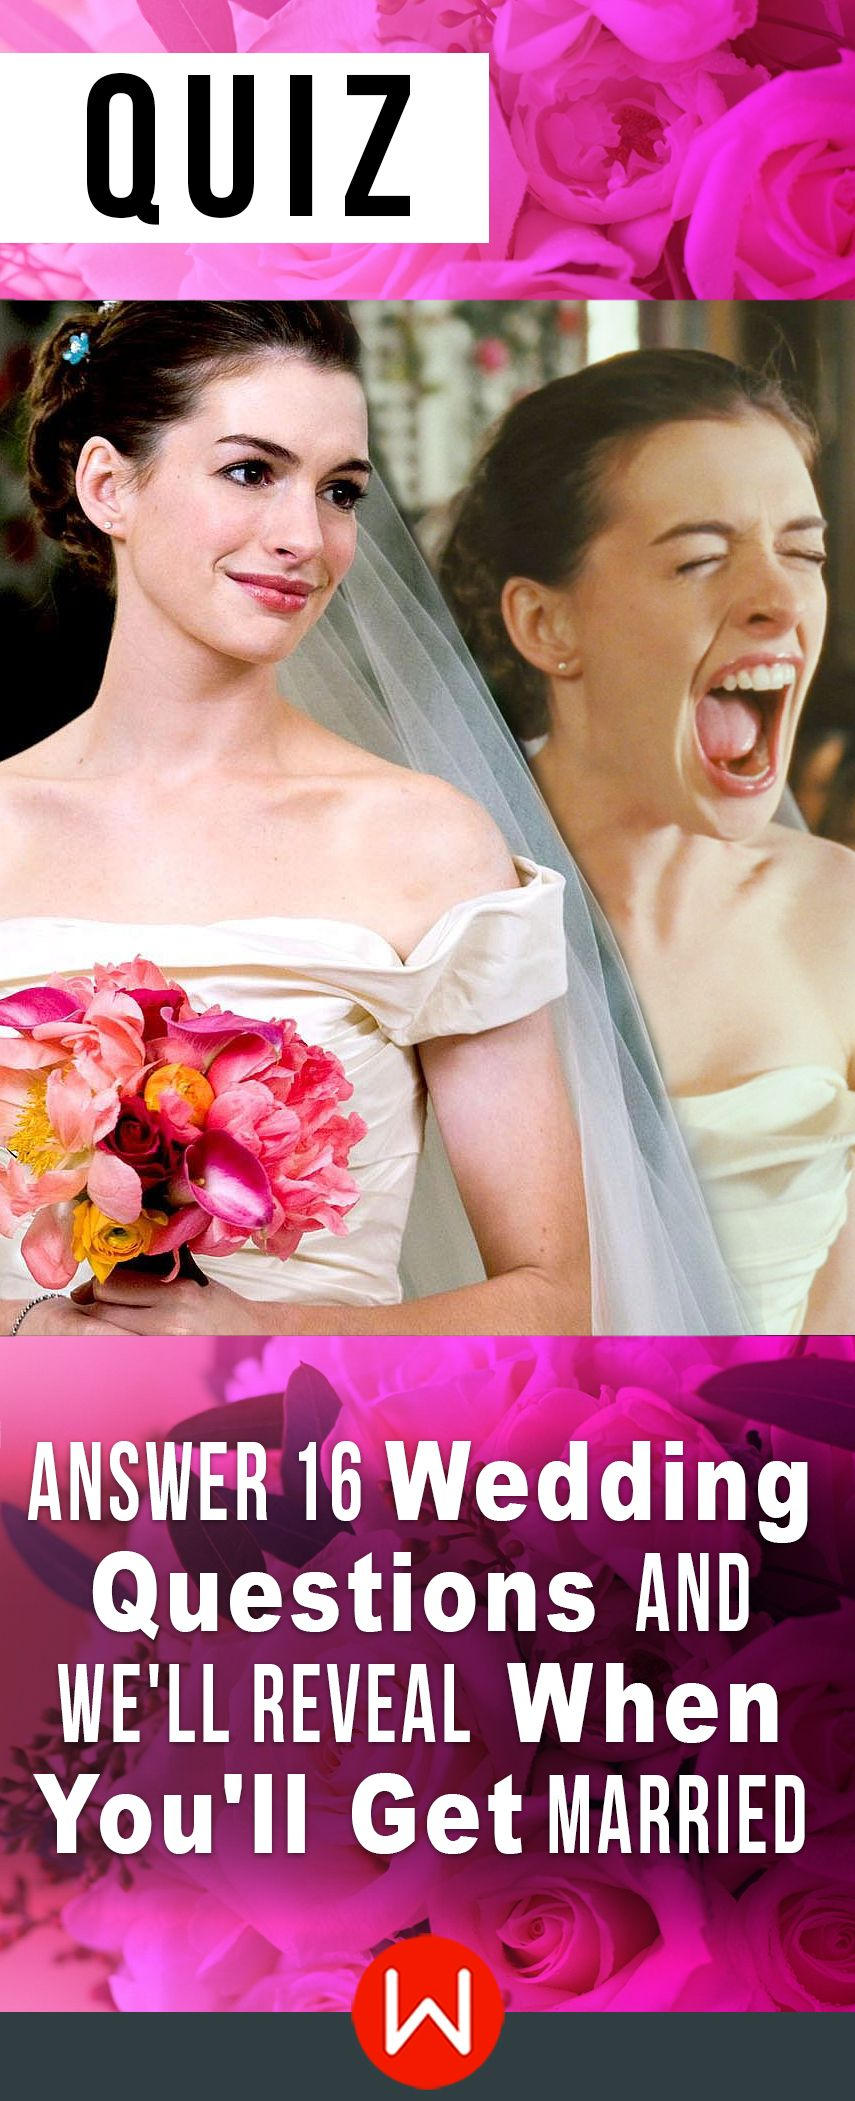 Quiz: Answer 16 Wedding Questions And We'll Reveal When You'll Get